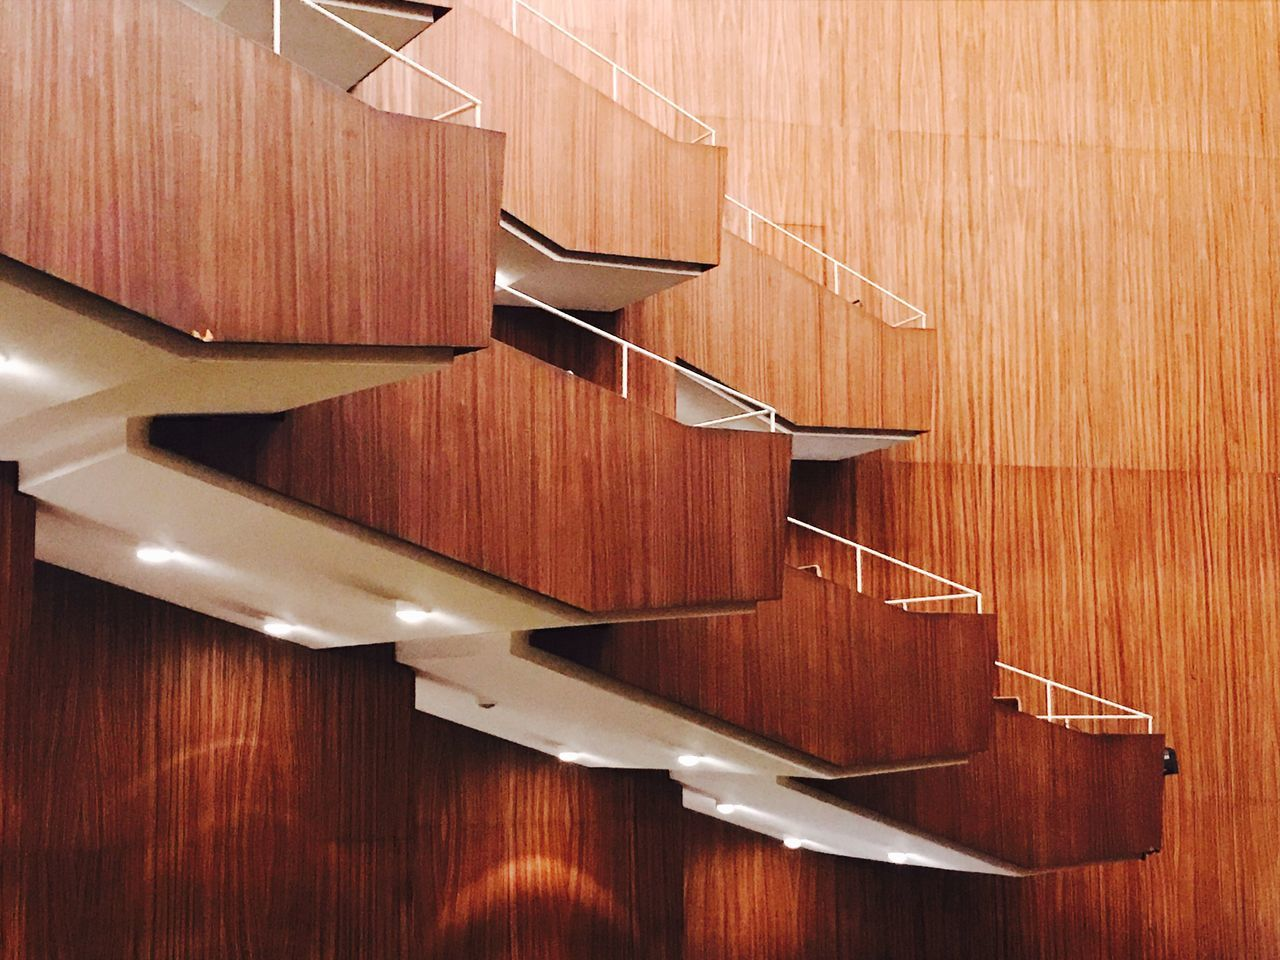 Wood - Material Indoors  Music Arts Culture And Entertainment Hardwood Floor Brown No People Classical Music Close-up Architecture Design Geometric Shape Geometry Shape